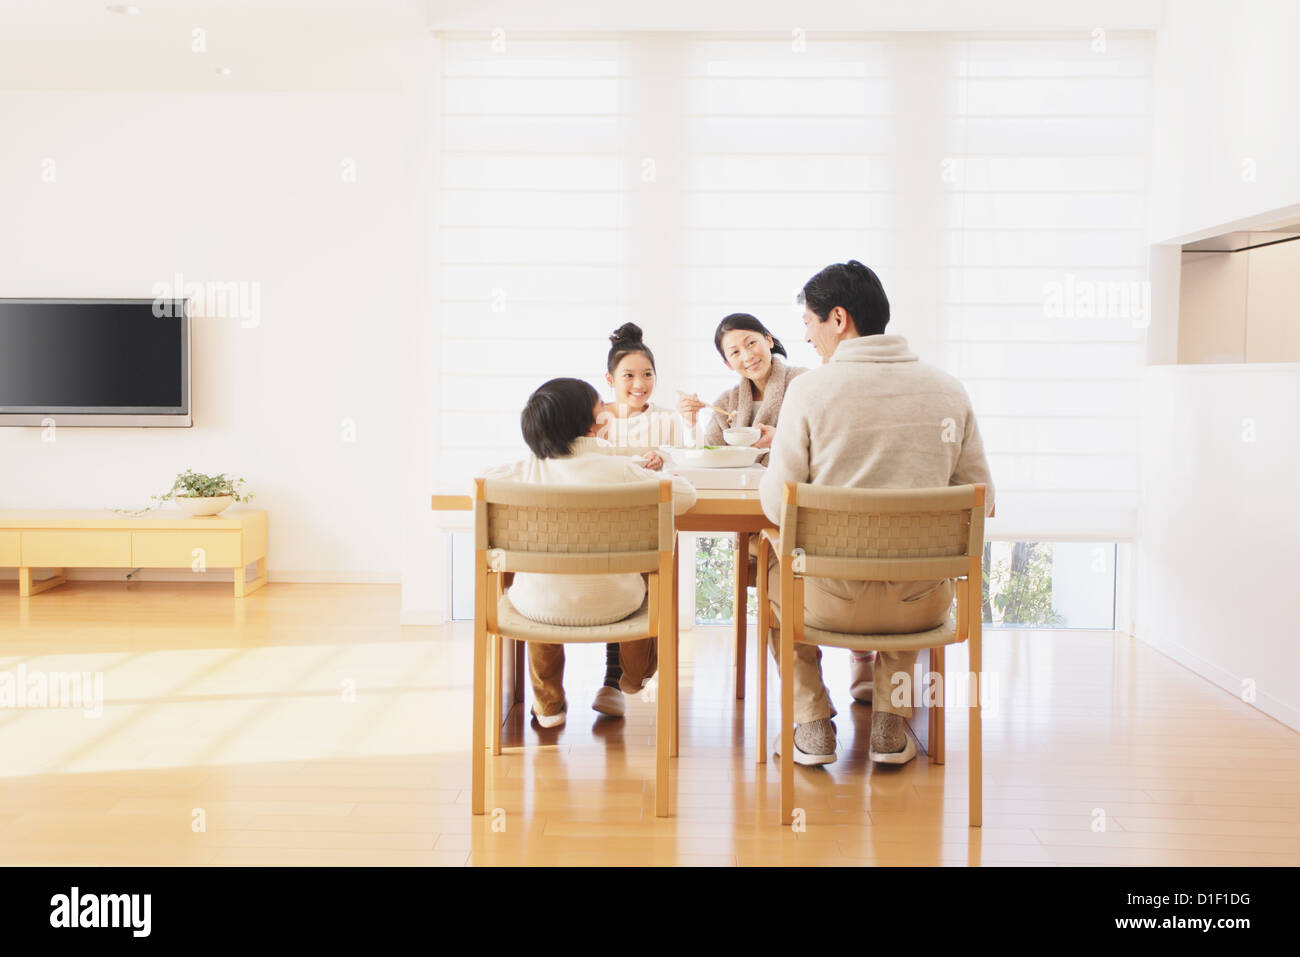 Eating Table Family Of Four People Eating At The Dining Table In The Living